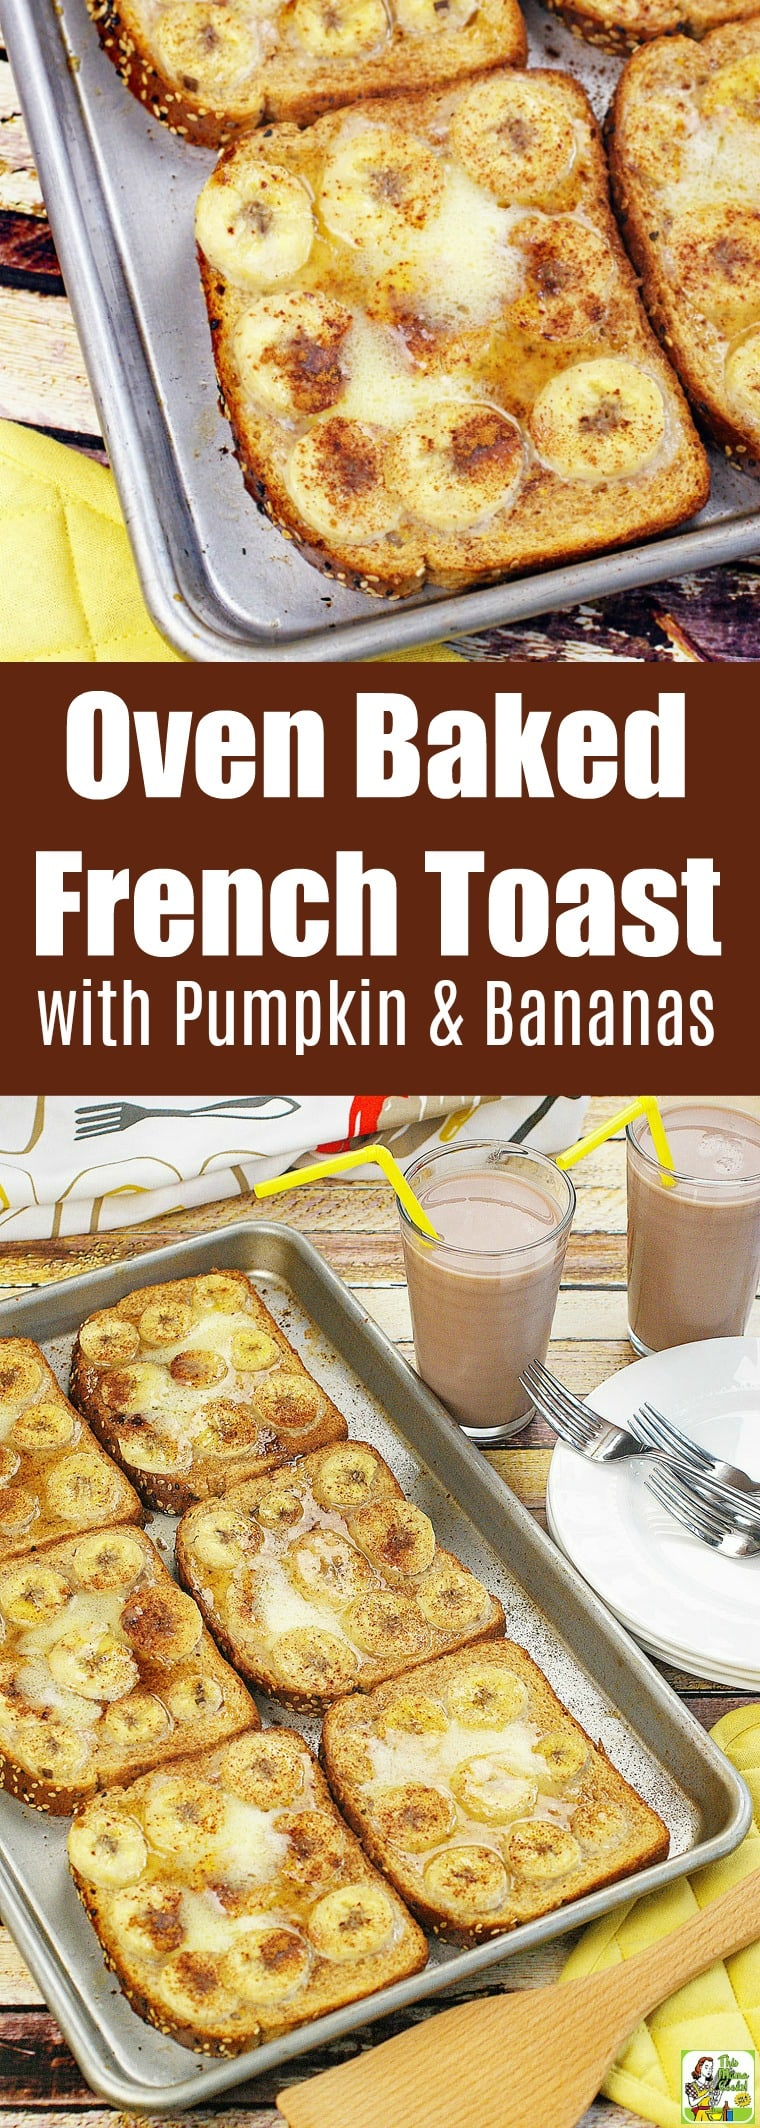 Oven Baked French Toast Recipe with Pumpkin & Bananas